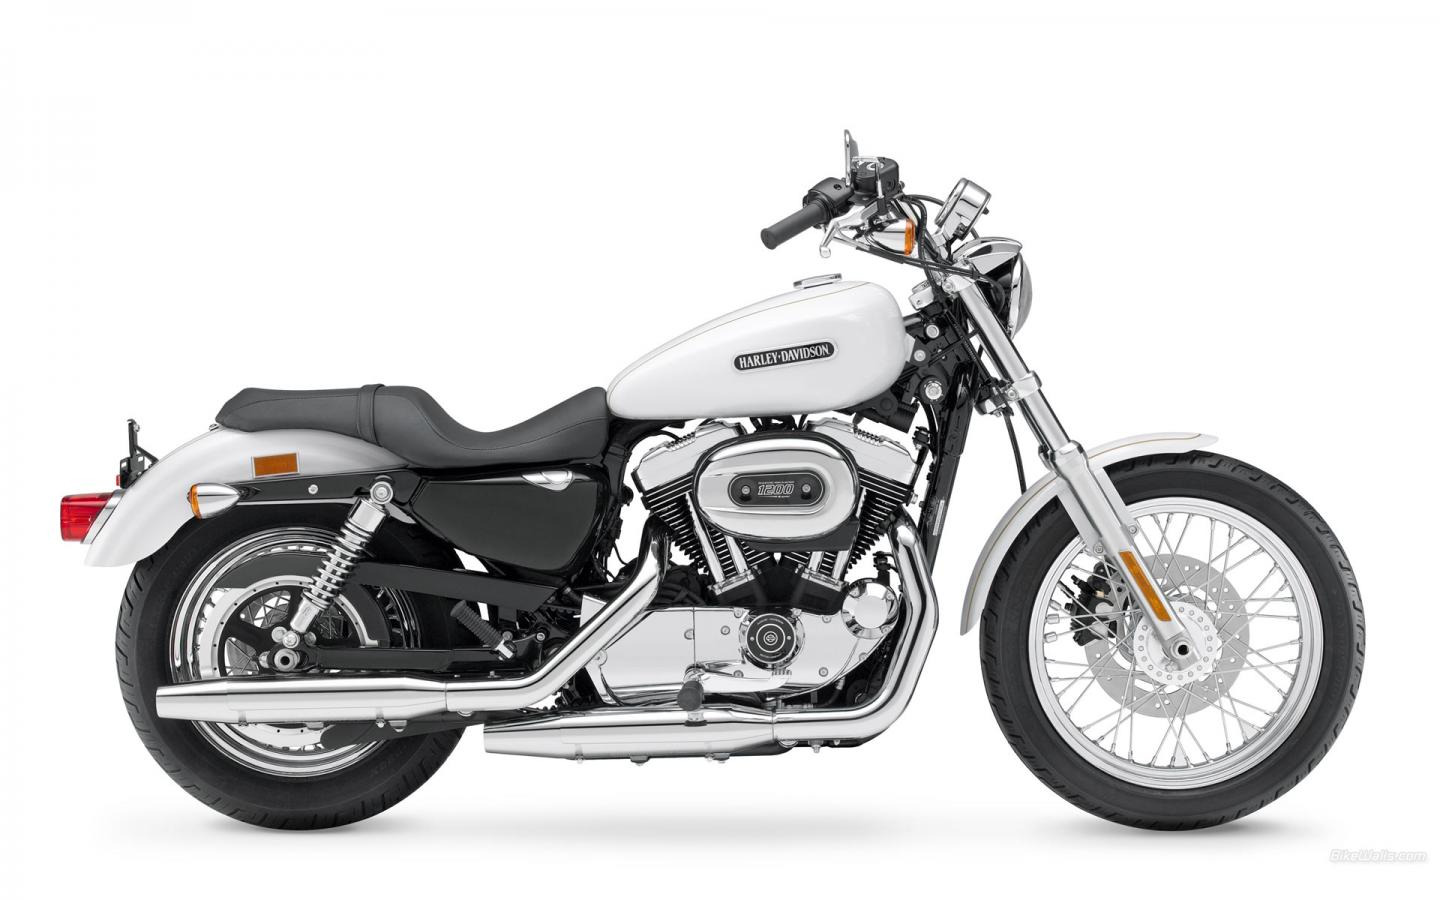 Harley-Davidson, Sportster, XL 1200 L Sportster 1200 Low, XL 1200 L Sportster 1200 Low 2008, мото, м 1440x900